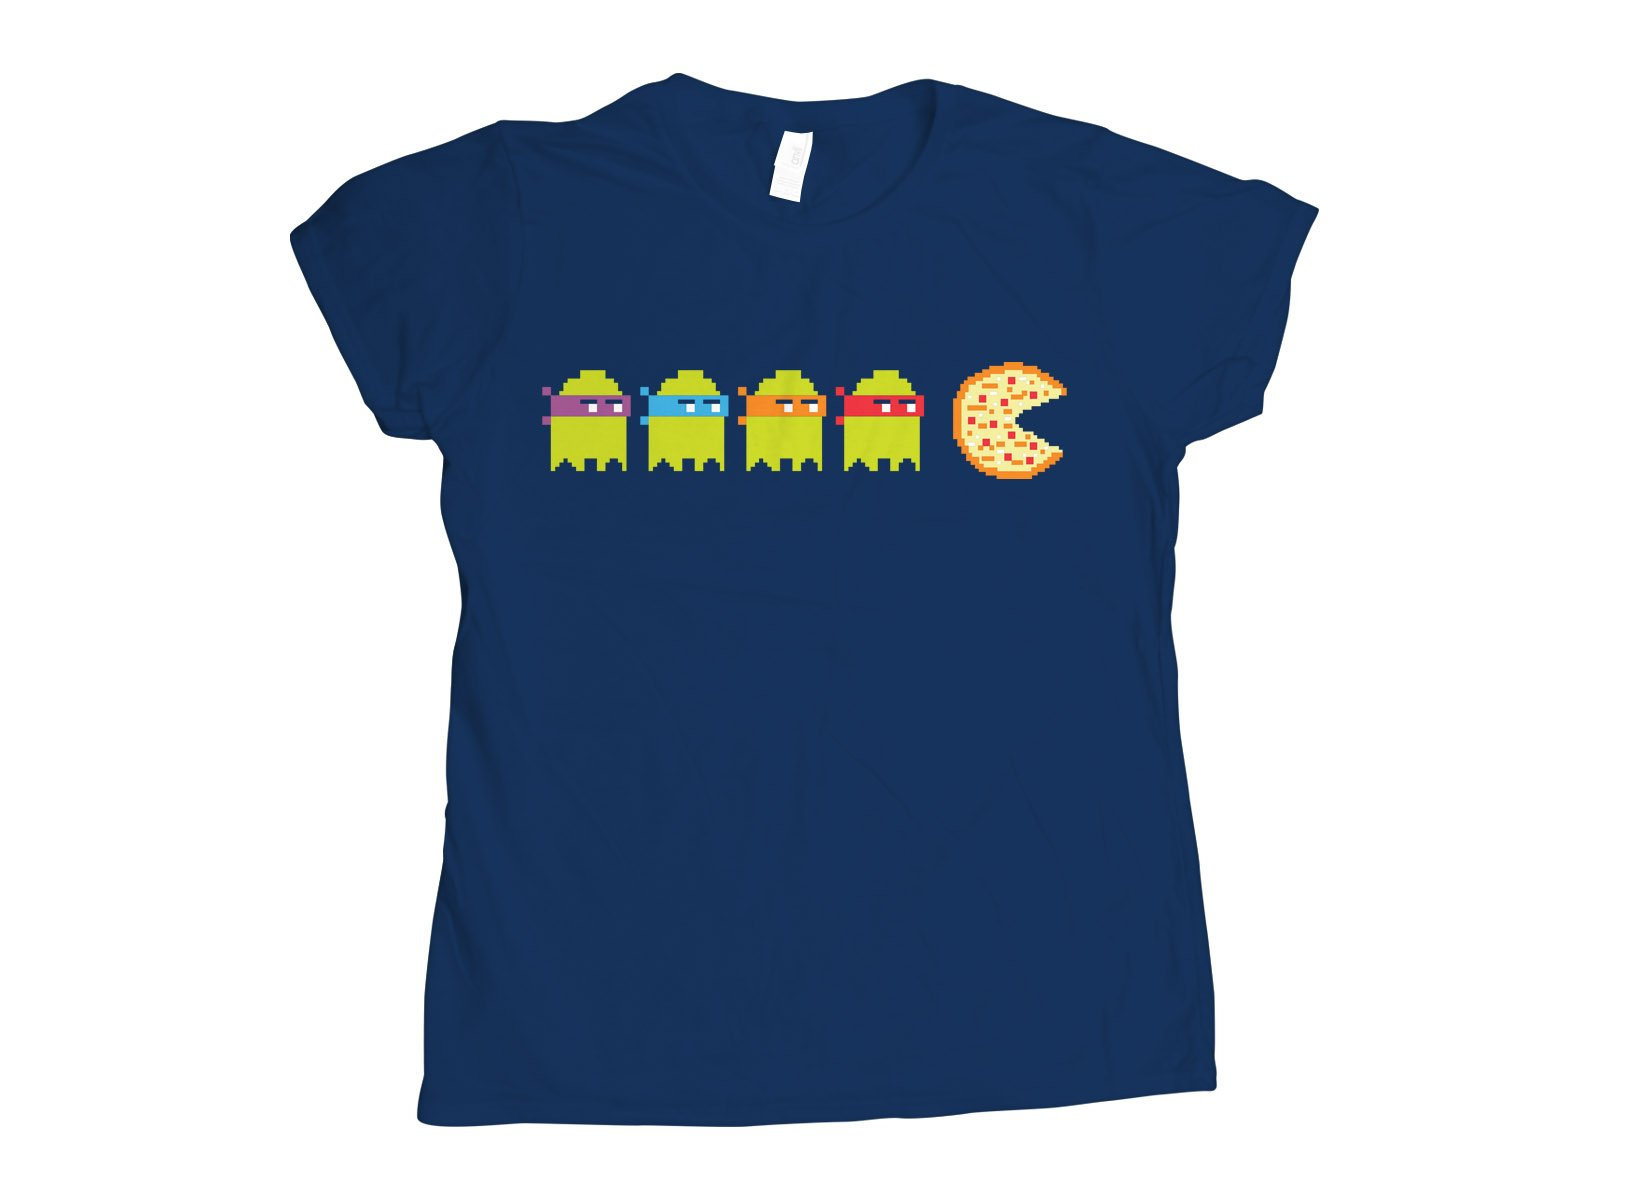 Teenage Mutant Ninja Ghosts on Womens T-Shirt